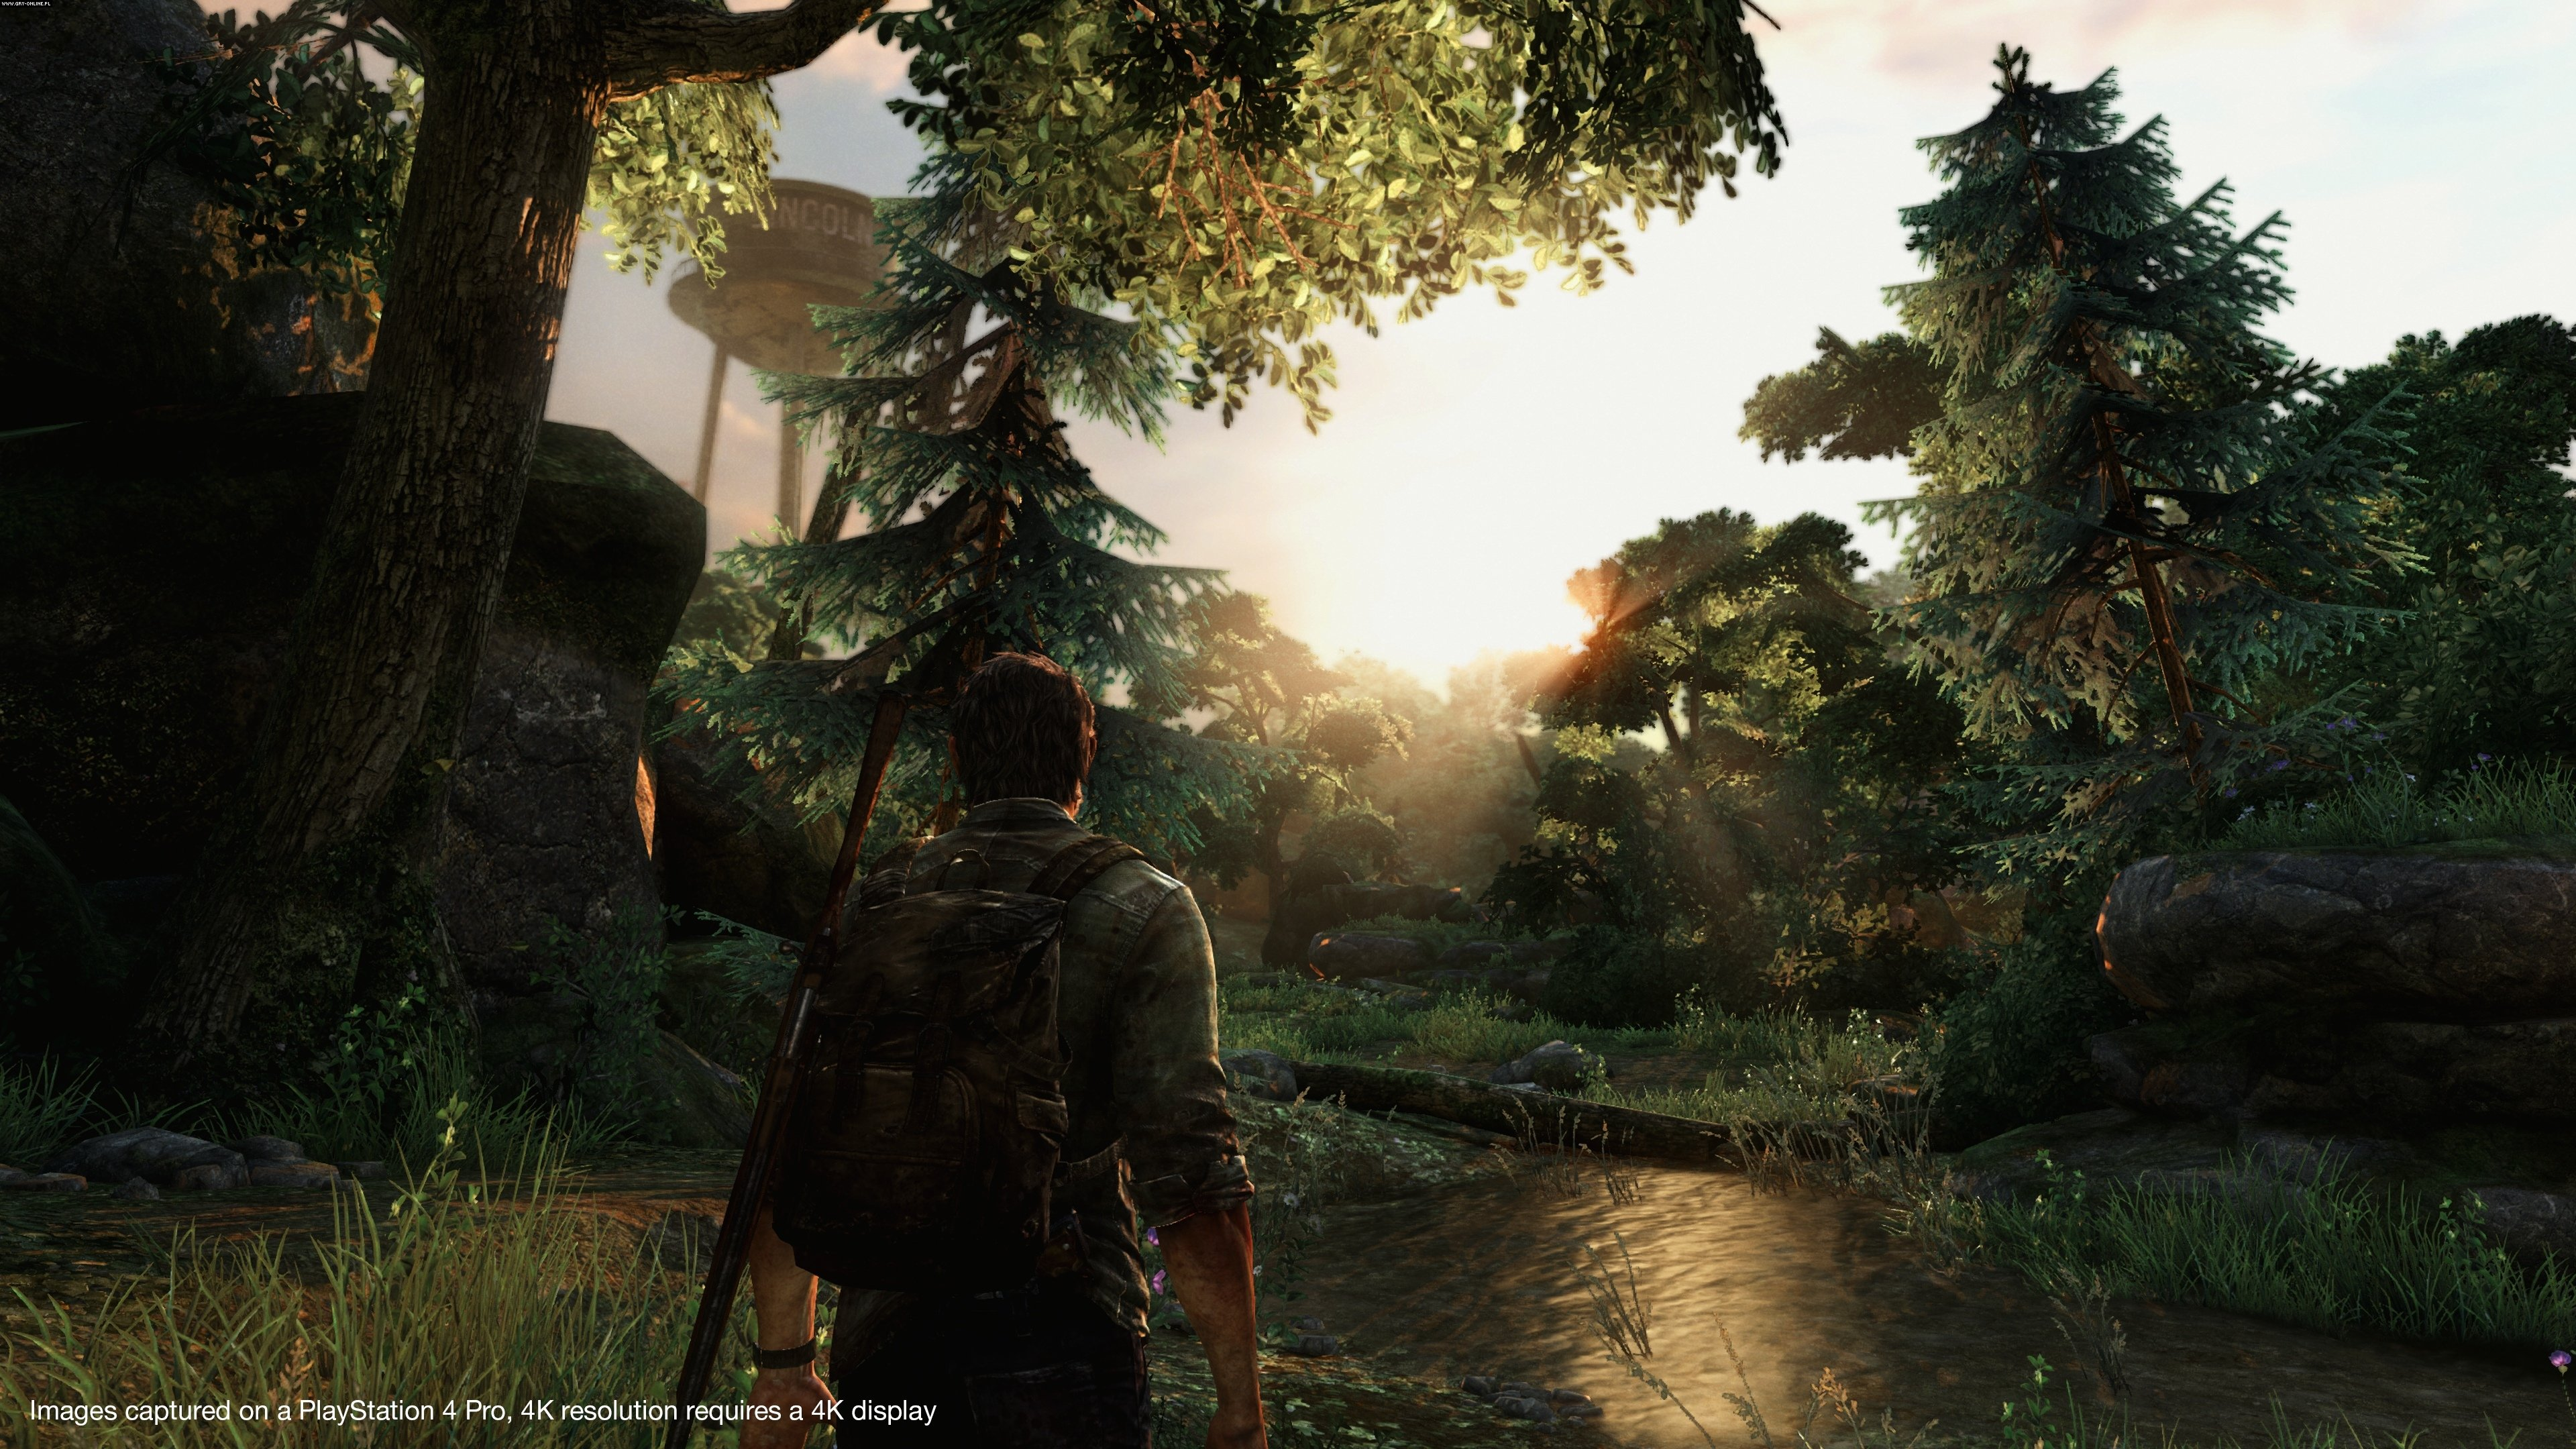 The Last of Us PS4 Gry Screen 1/201, Naughty Dog, Sony Interactive Entertainment